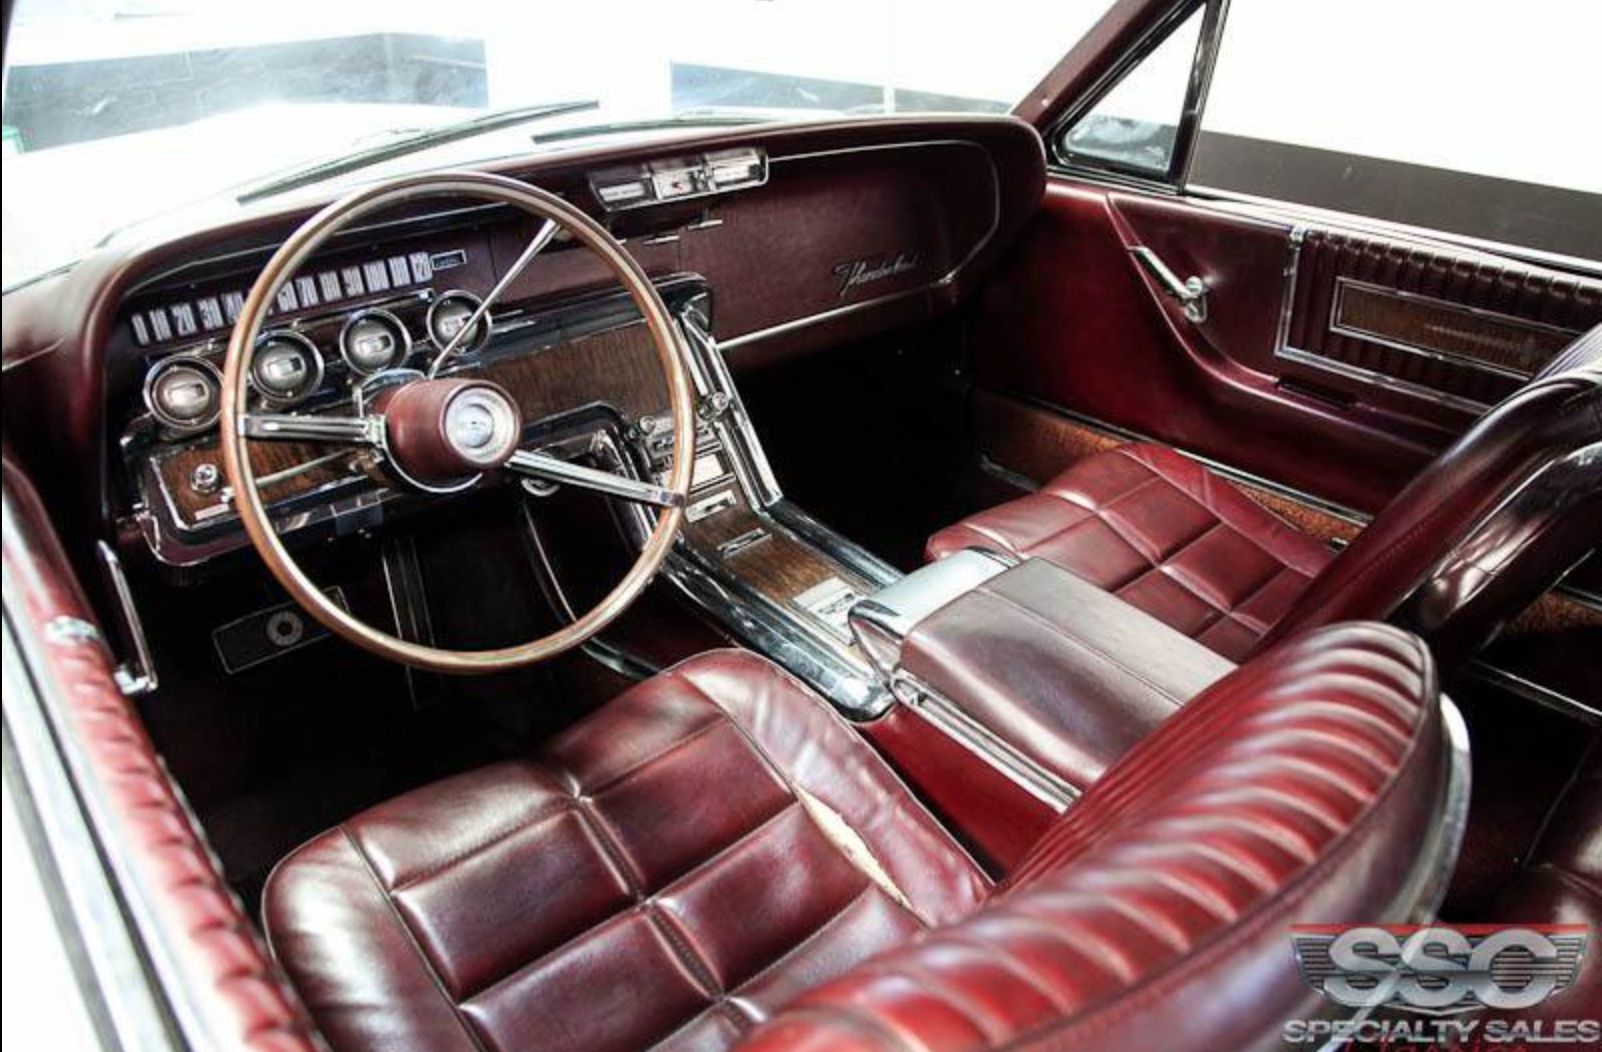 1966 thunderbird i typically don 39 t like burgundy interior but the patina on the leather here. Black Bedroom Furniture Sets. Home Design Ideas